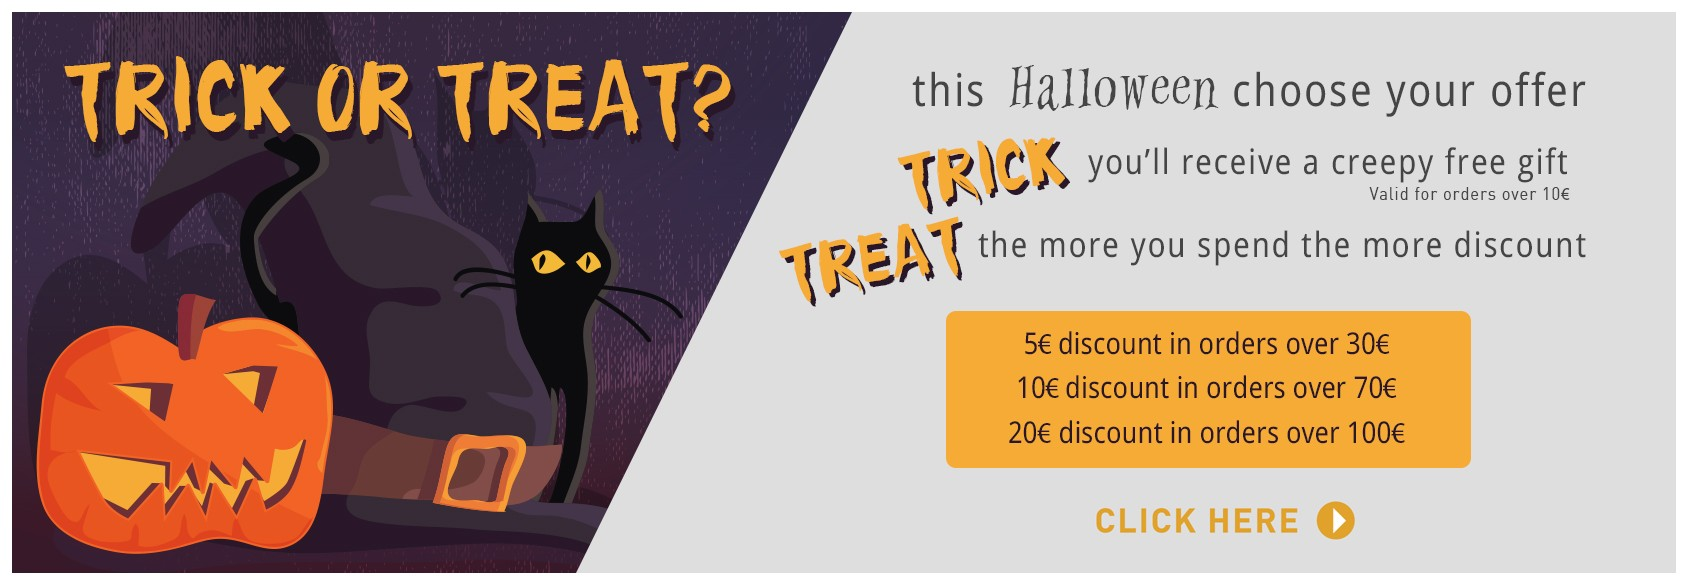 Halloween Promotion: Trick or treat?